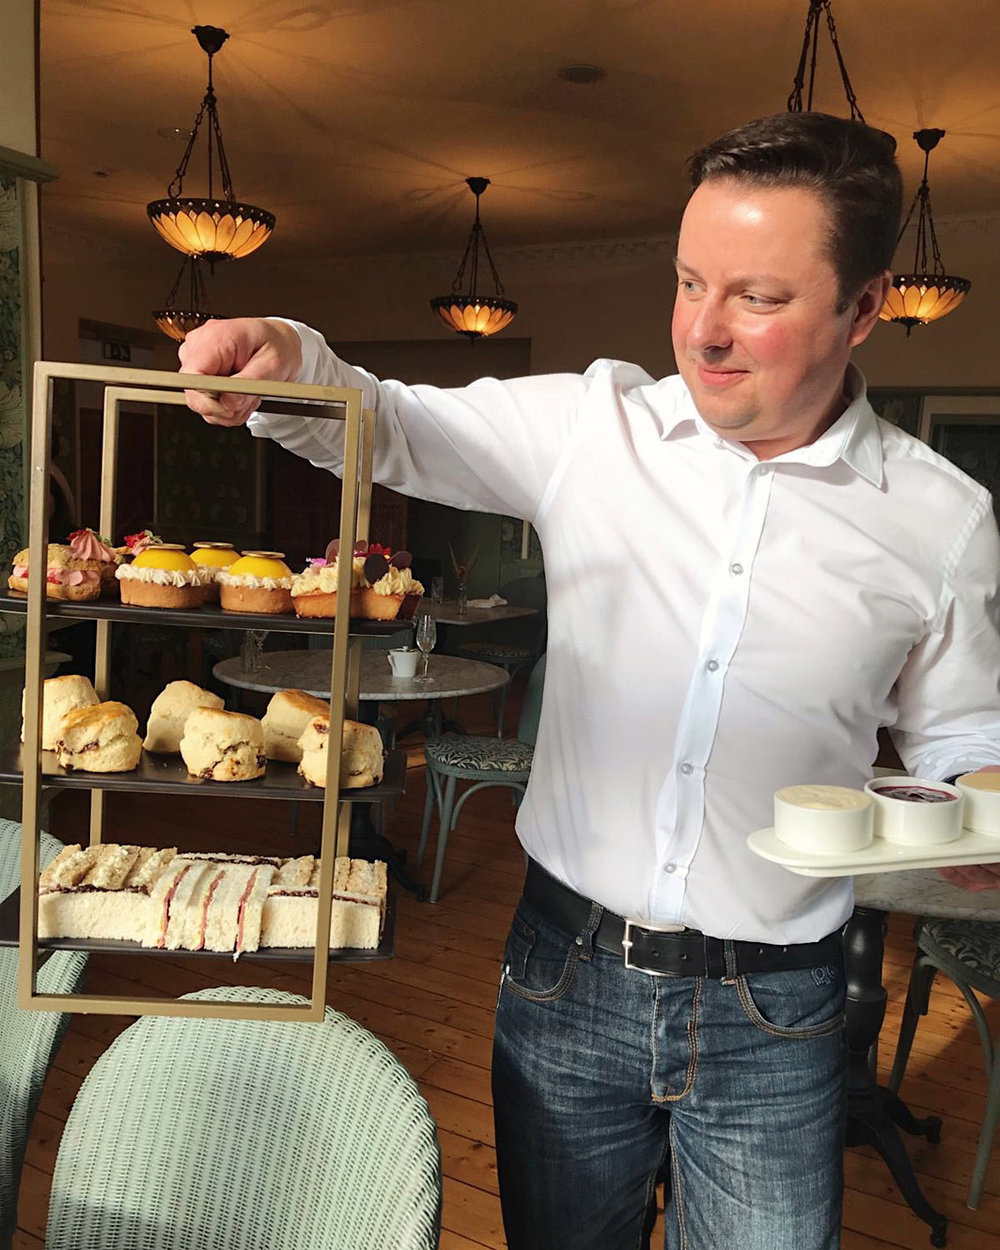 Michael Vanheste and Arts & Craft period three tier afternoon tea stand.